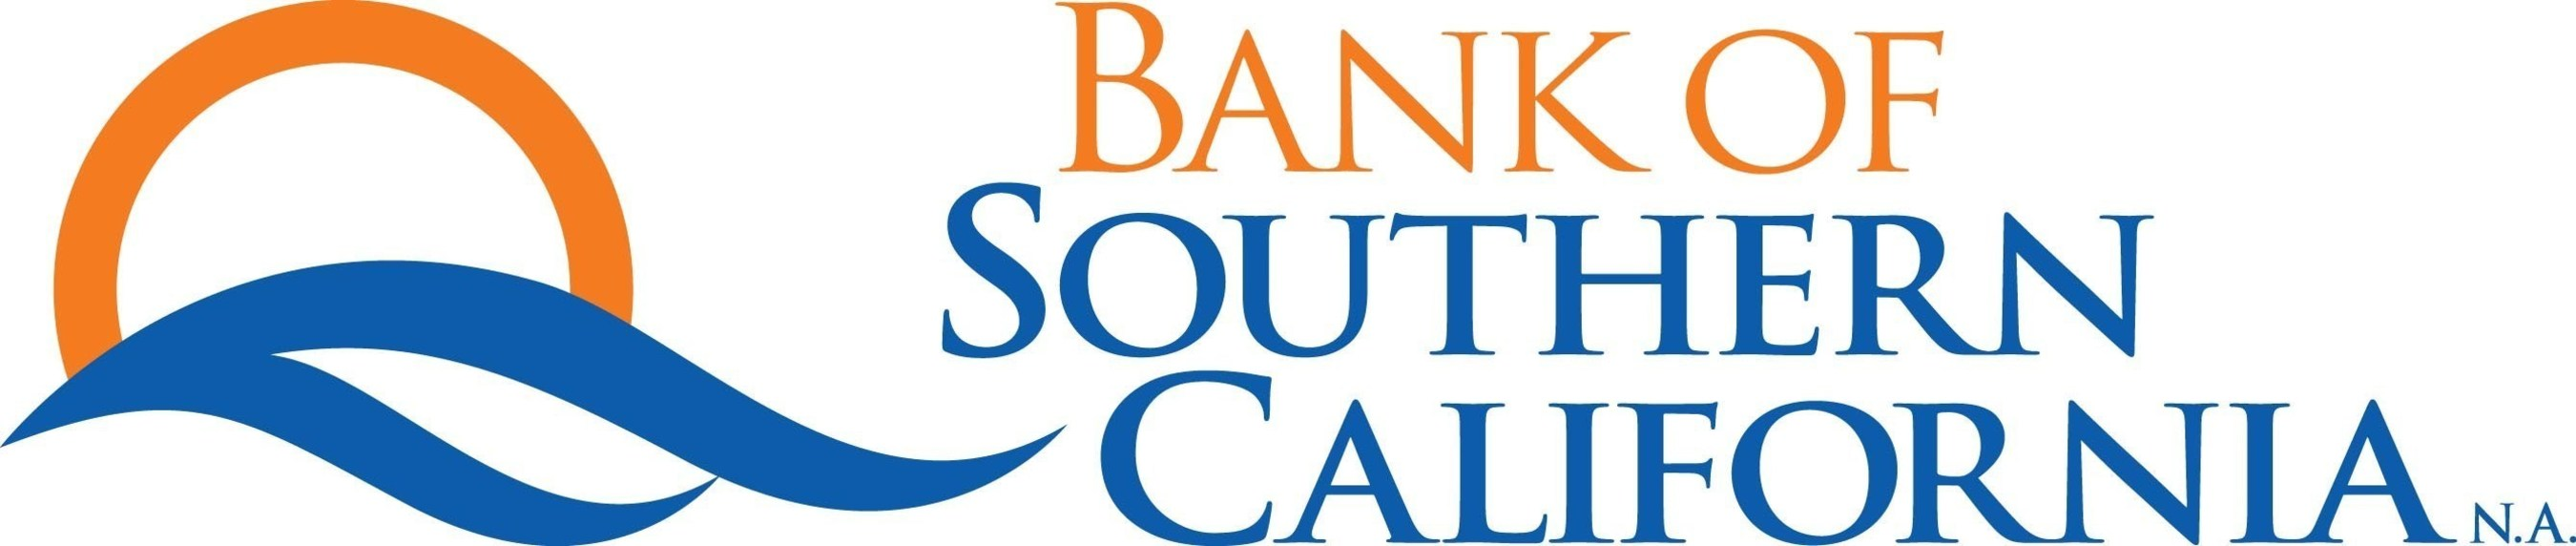 Bank of Southern California Announces Senior Vice President Promotions